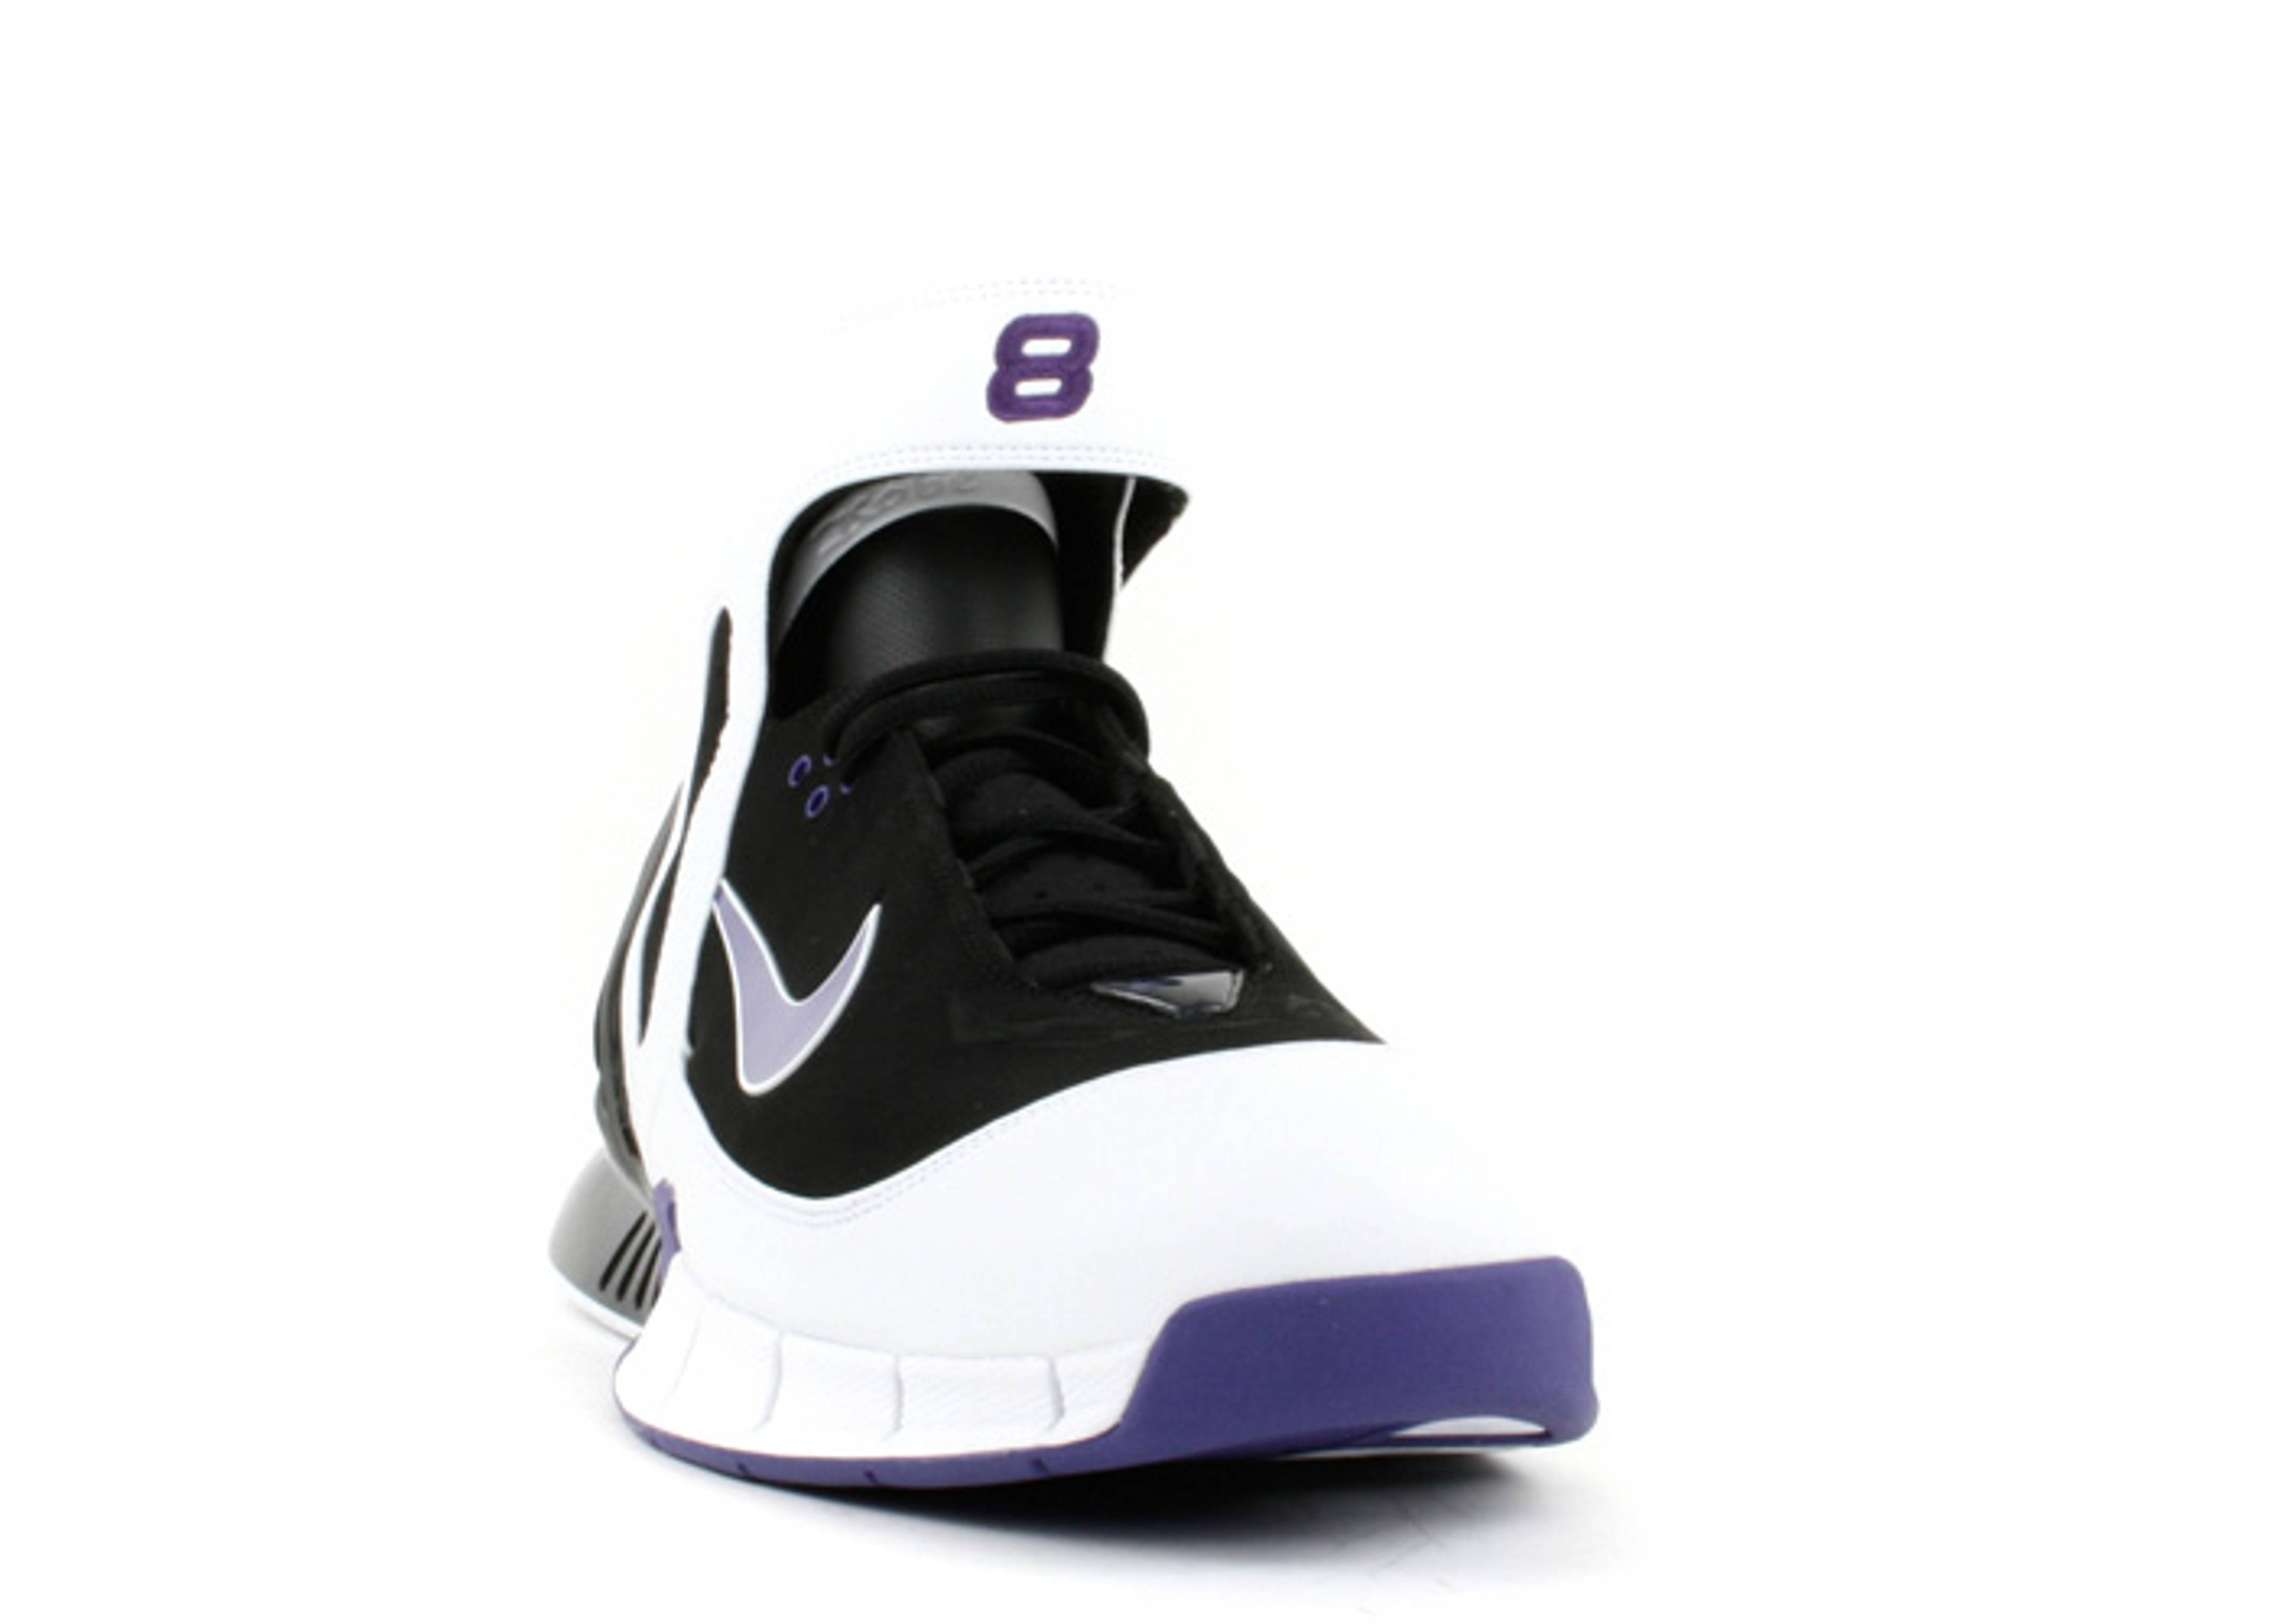 outlet store 3f316 d4ab0 nike. air zoom huarache 2k5 kobe player edition